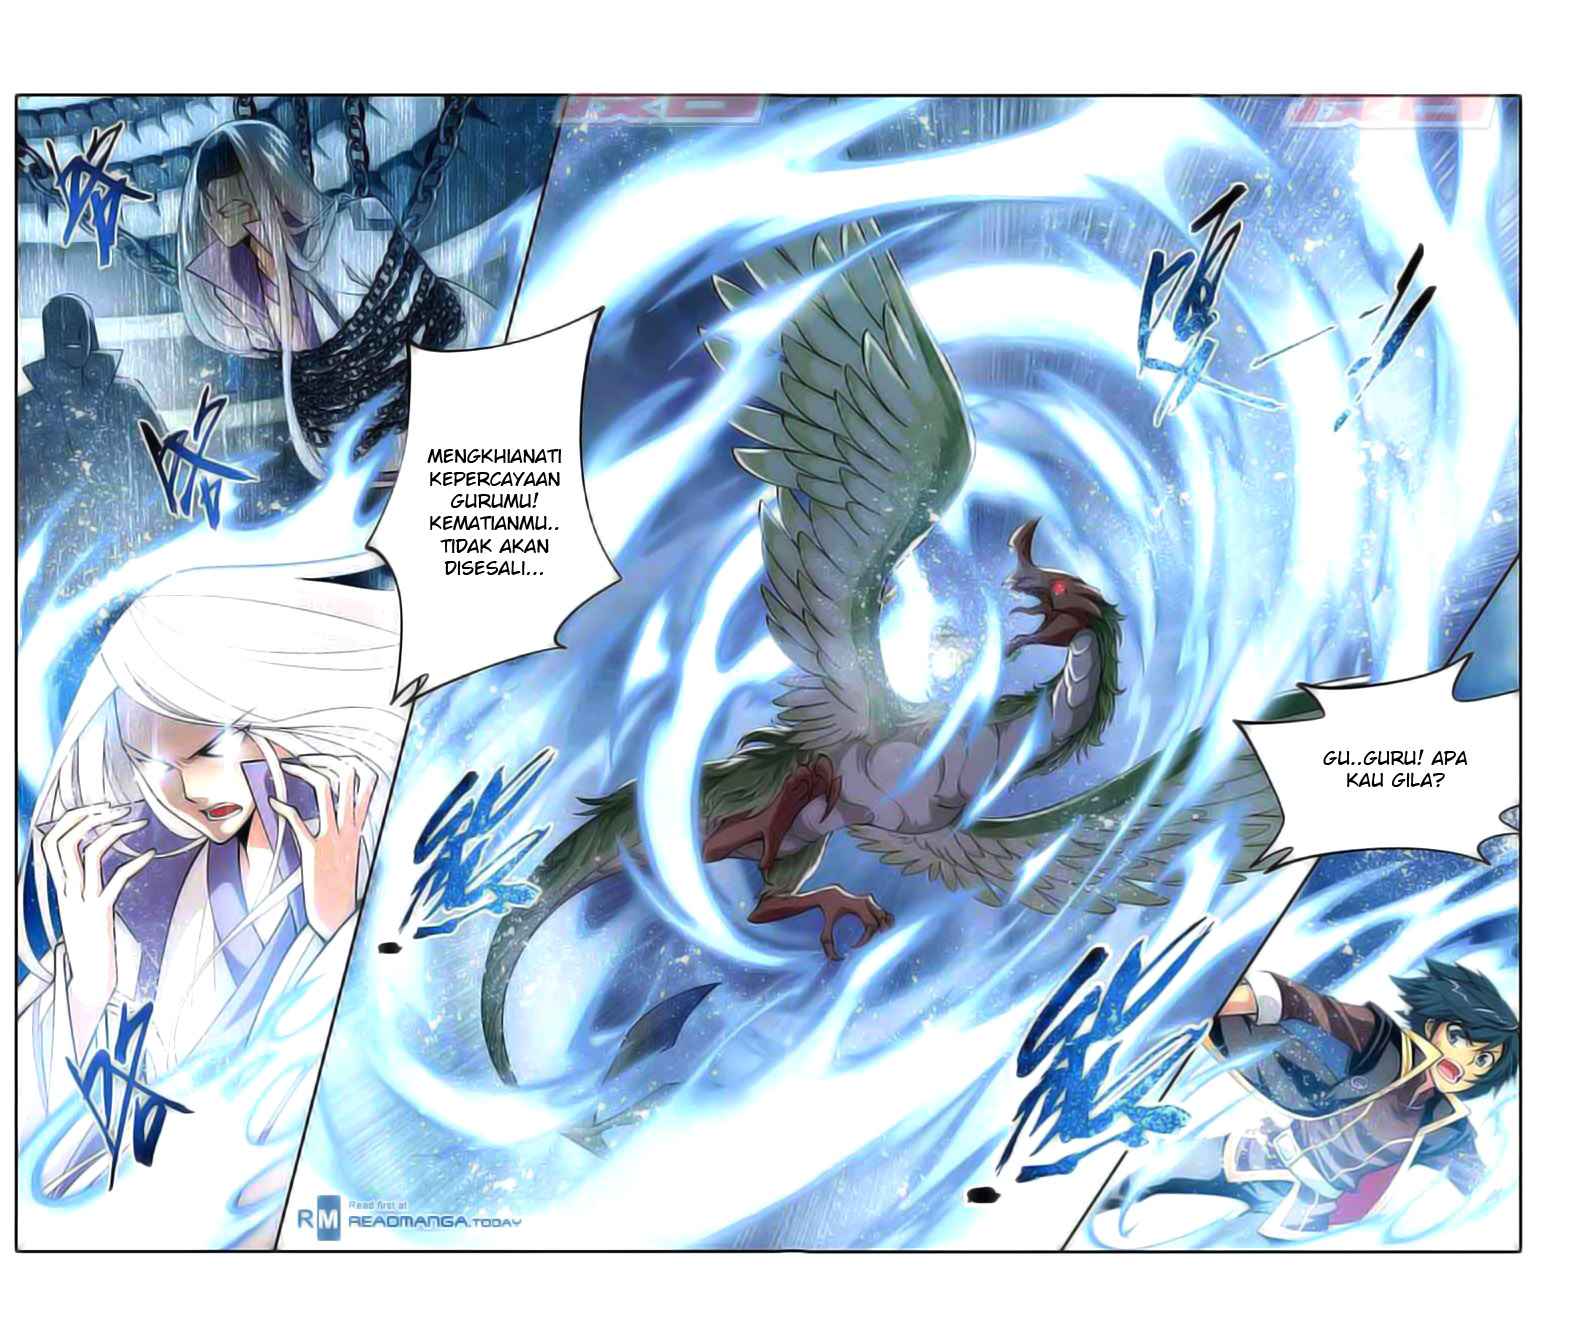 Dilarang COPAS - situs resmi www.mangacanblog.com - Komik battle through heaven 038 - chapter 38 39 Indonesia battle through heaven 038 - chapter 38 Terbaru 5|Baca Manga Komik Indonesia|Mangacan